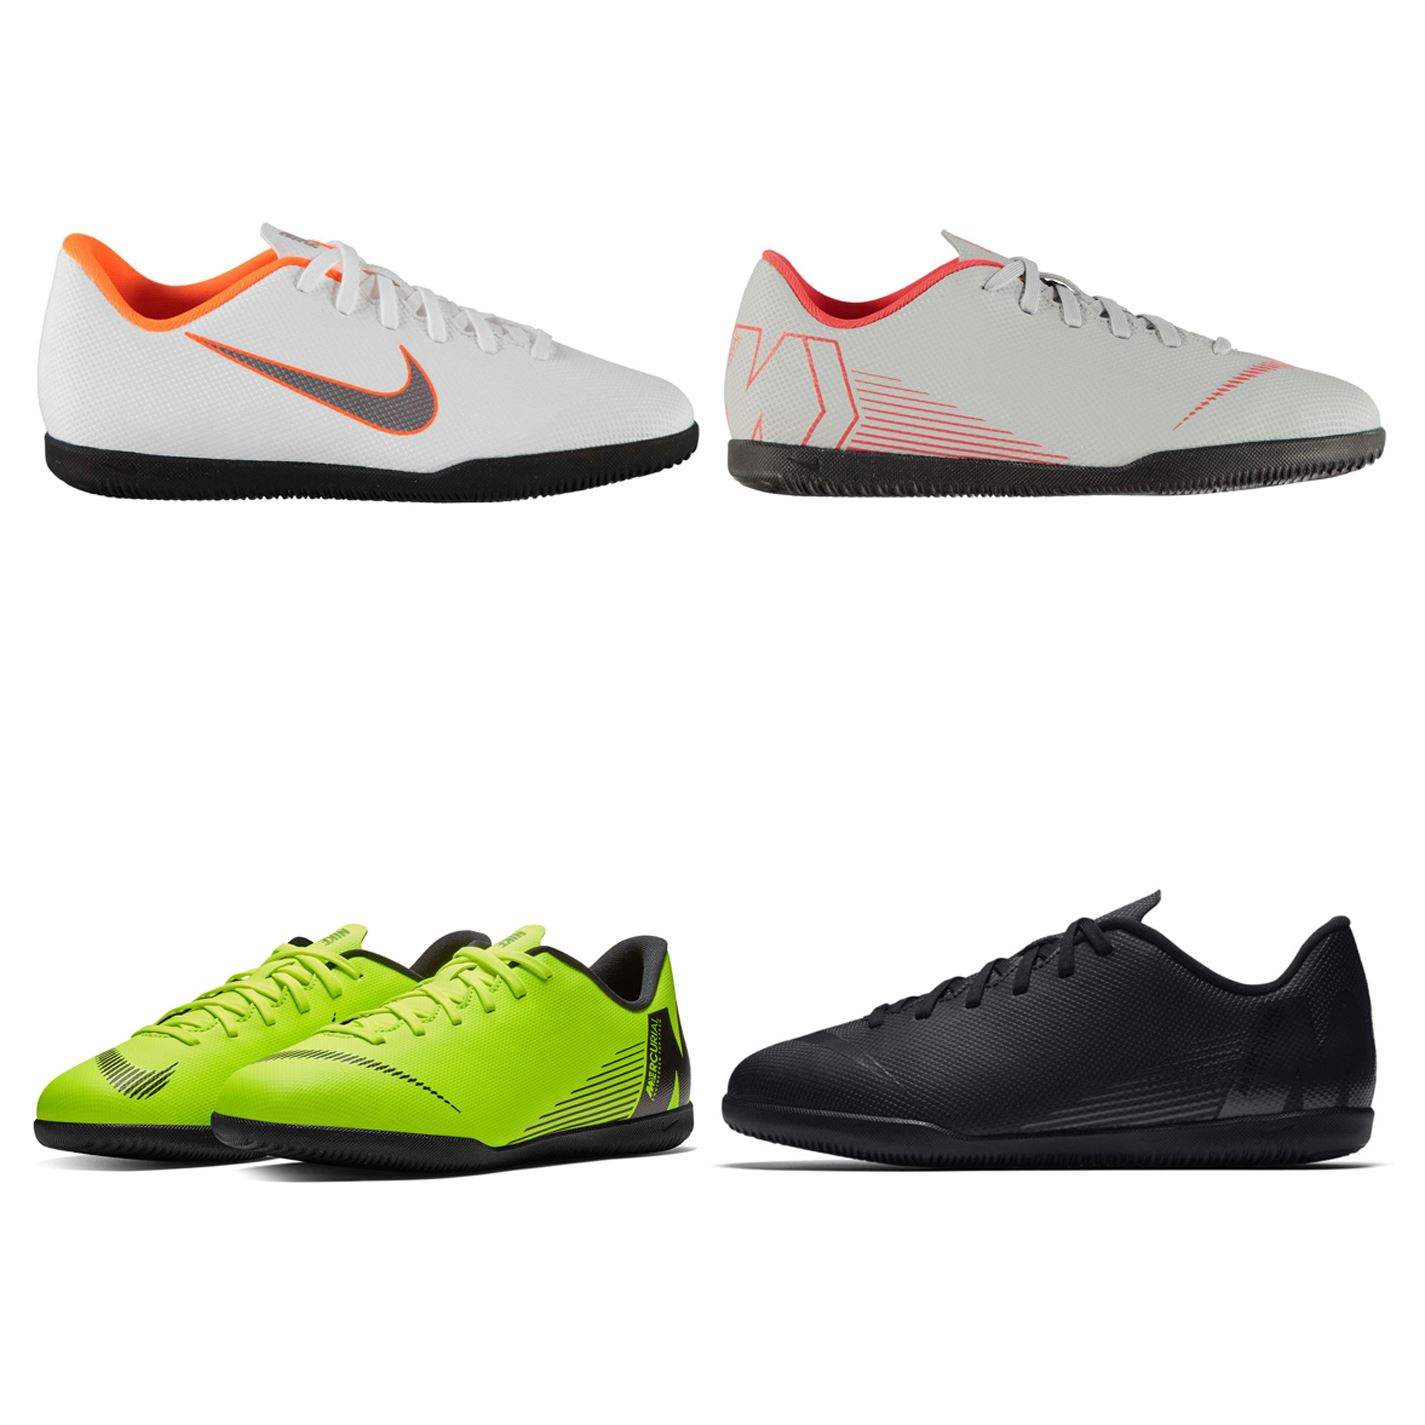 93136916b Details about Nike Mercurial Vapor Club Indoor Football Trainers Juniors  Soccer Shoes Sneakers